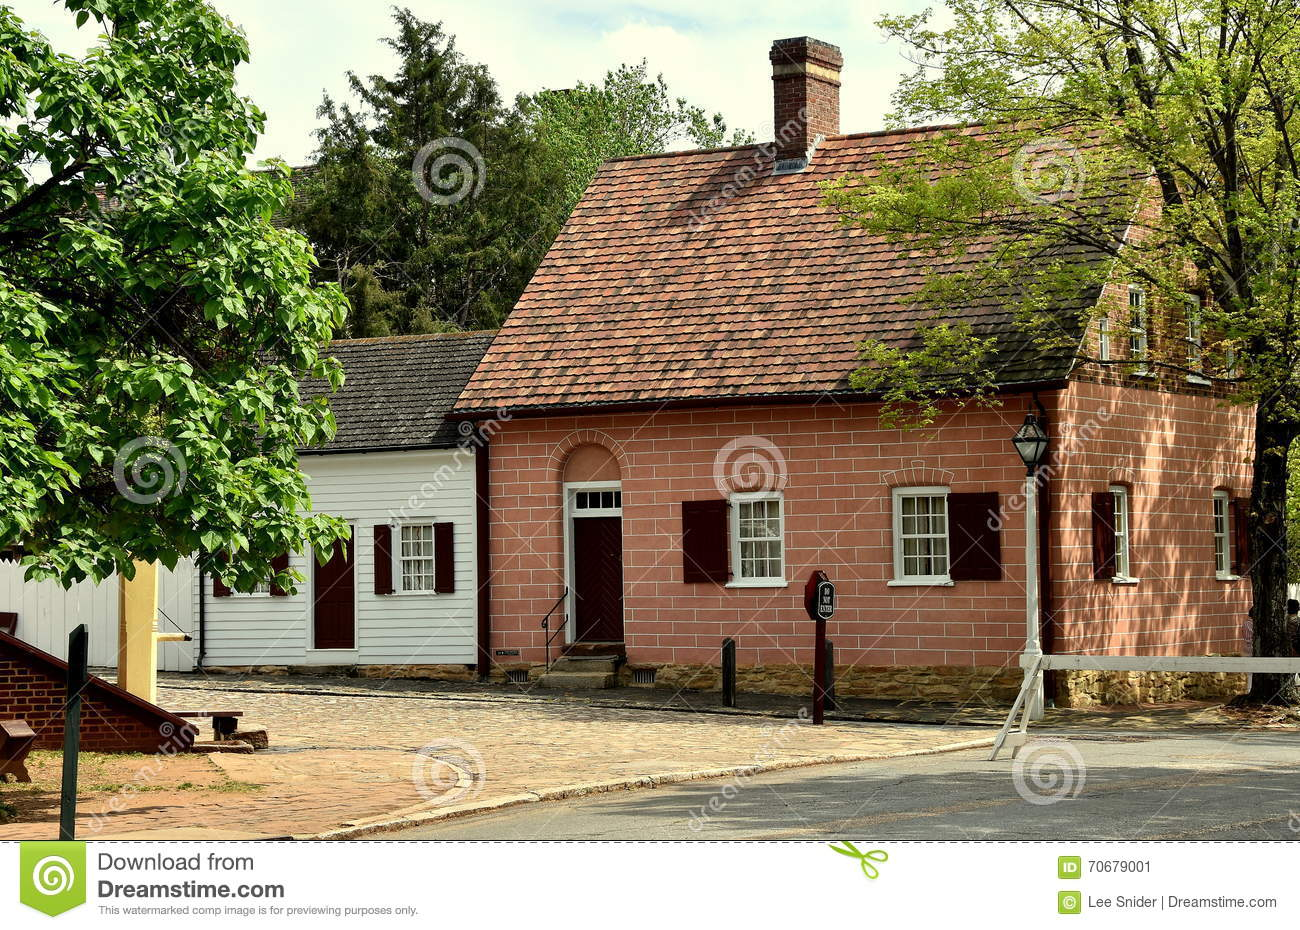 Old salem nc 18th century moravian houses editorial Century home builders